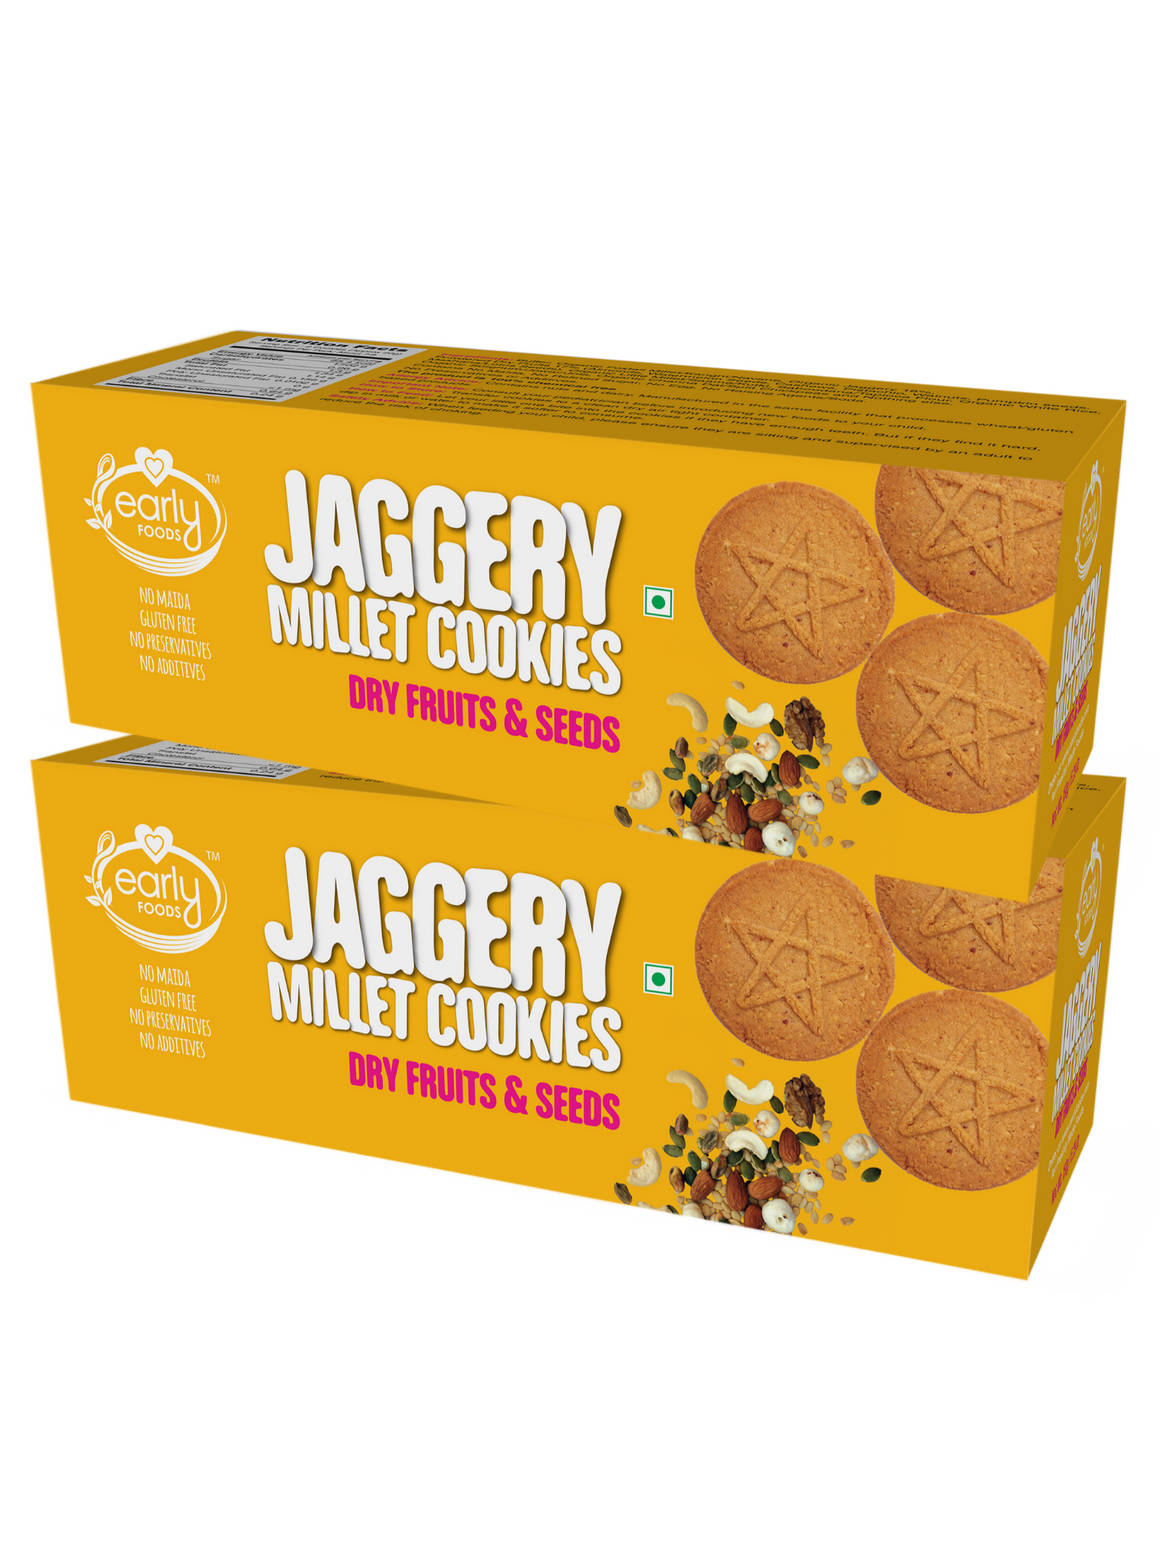 Pack of 2 - Dry Fruit Jaggery Cookies, 150gms x 2